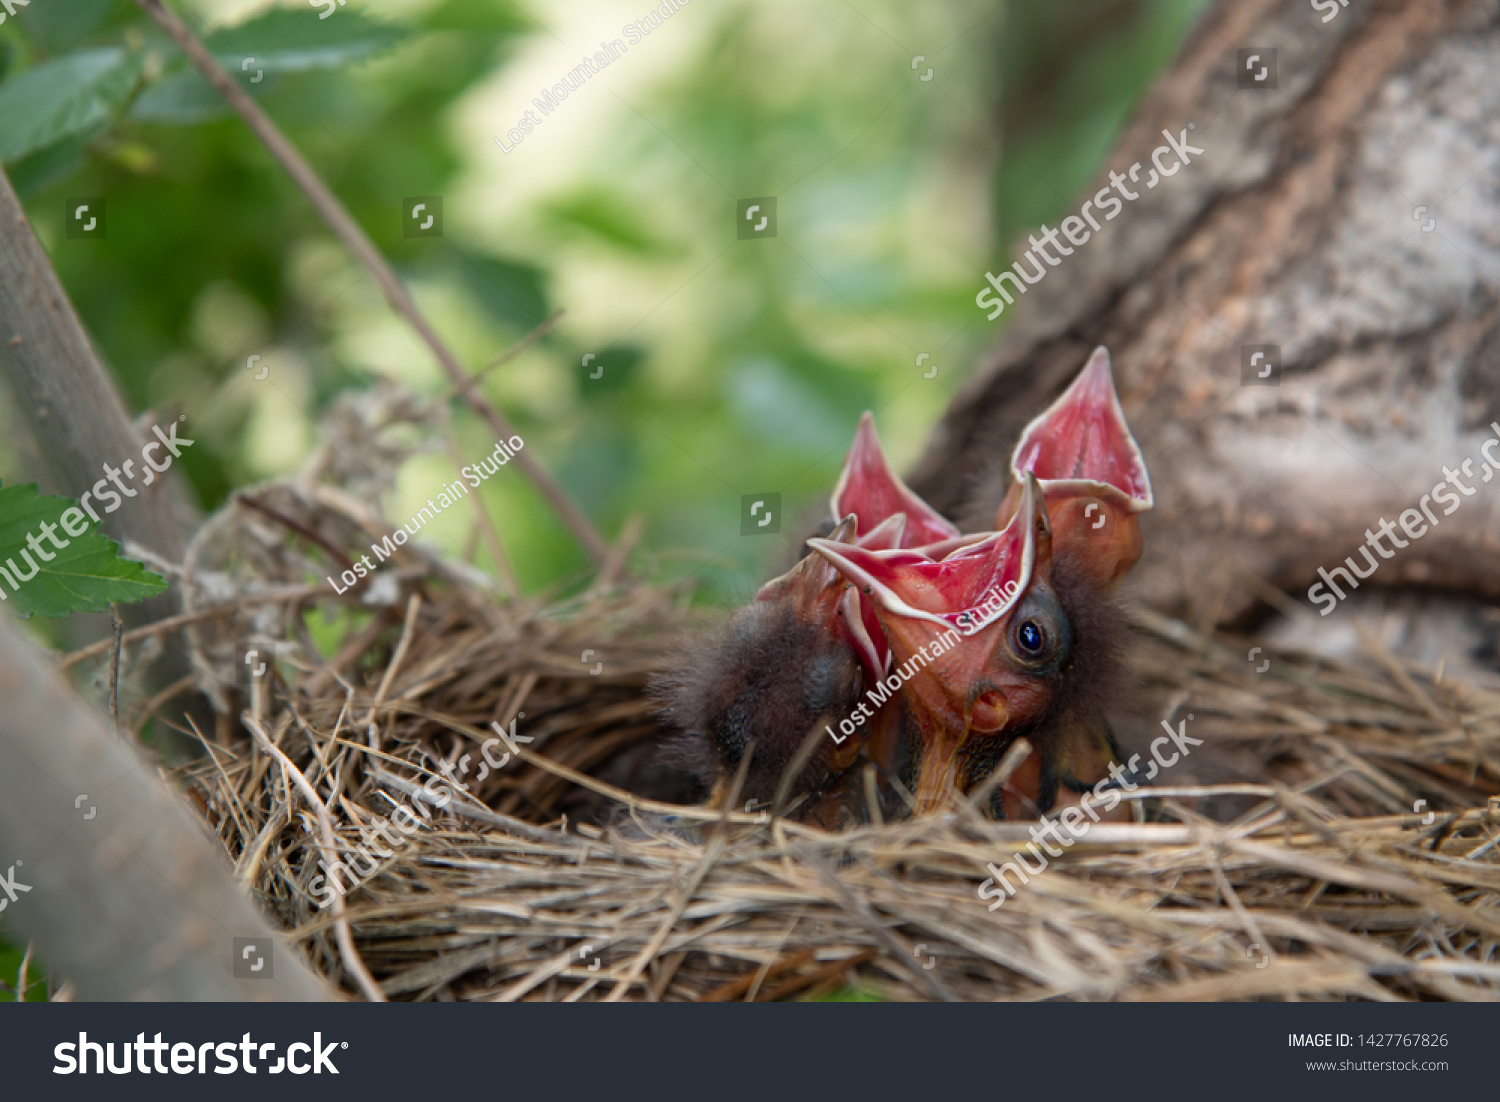 stock-photo-newly-hatched-baby-greckle-b